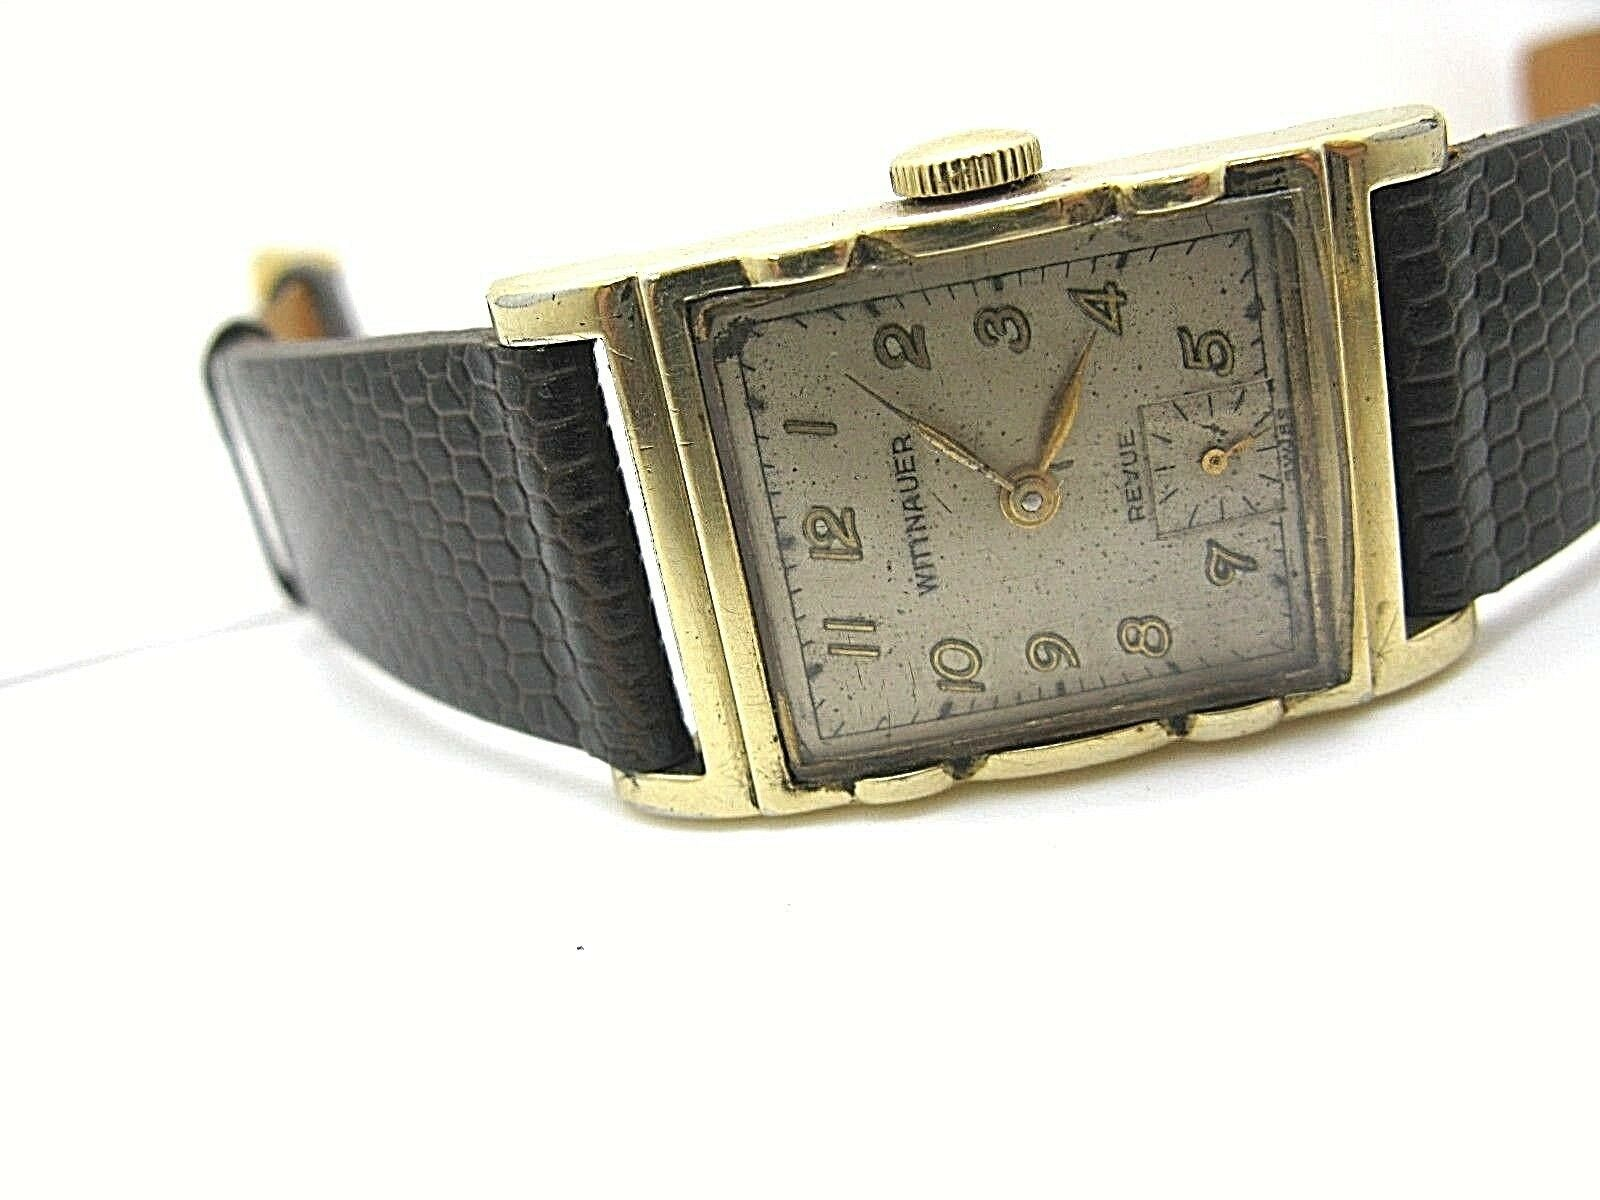 WITTNAUER LONGINE VINTAGE WATCH REVUE 1950'S 10K GF serviced